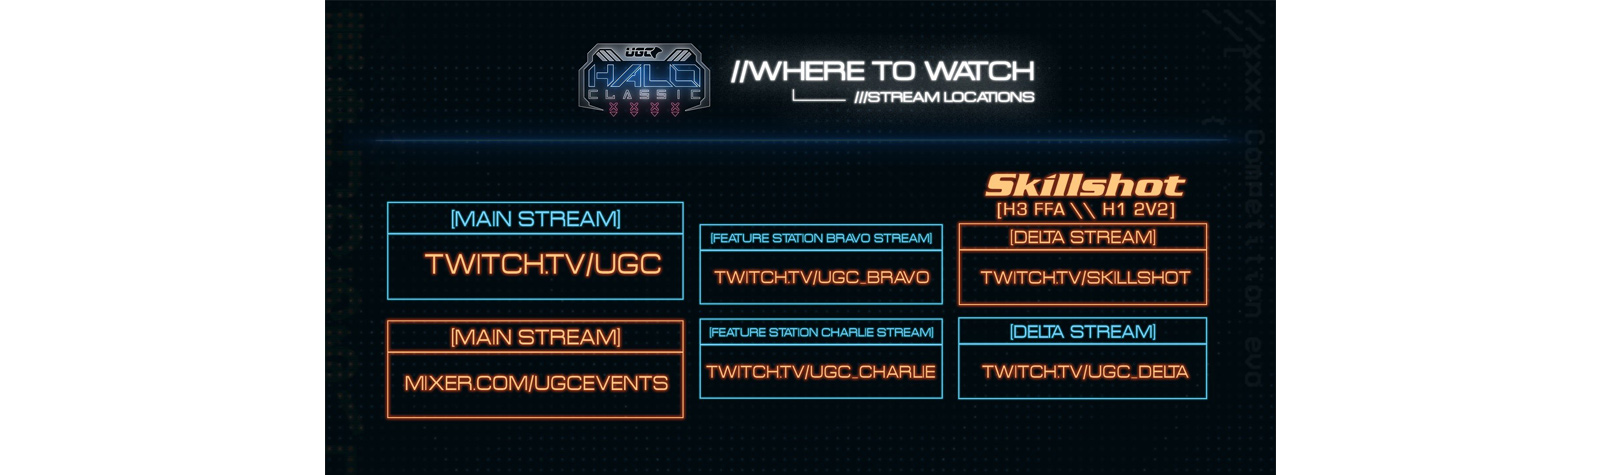 Halo Classic Stream Information and Updates